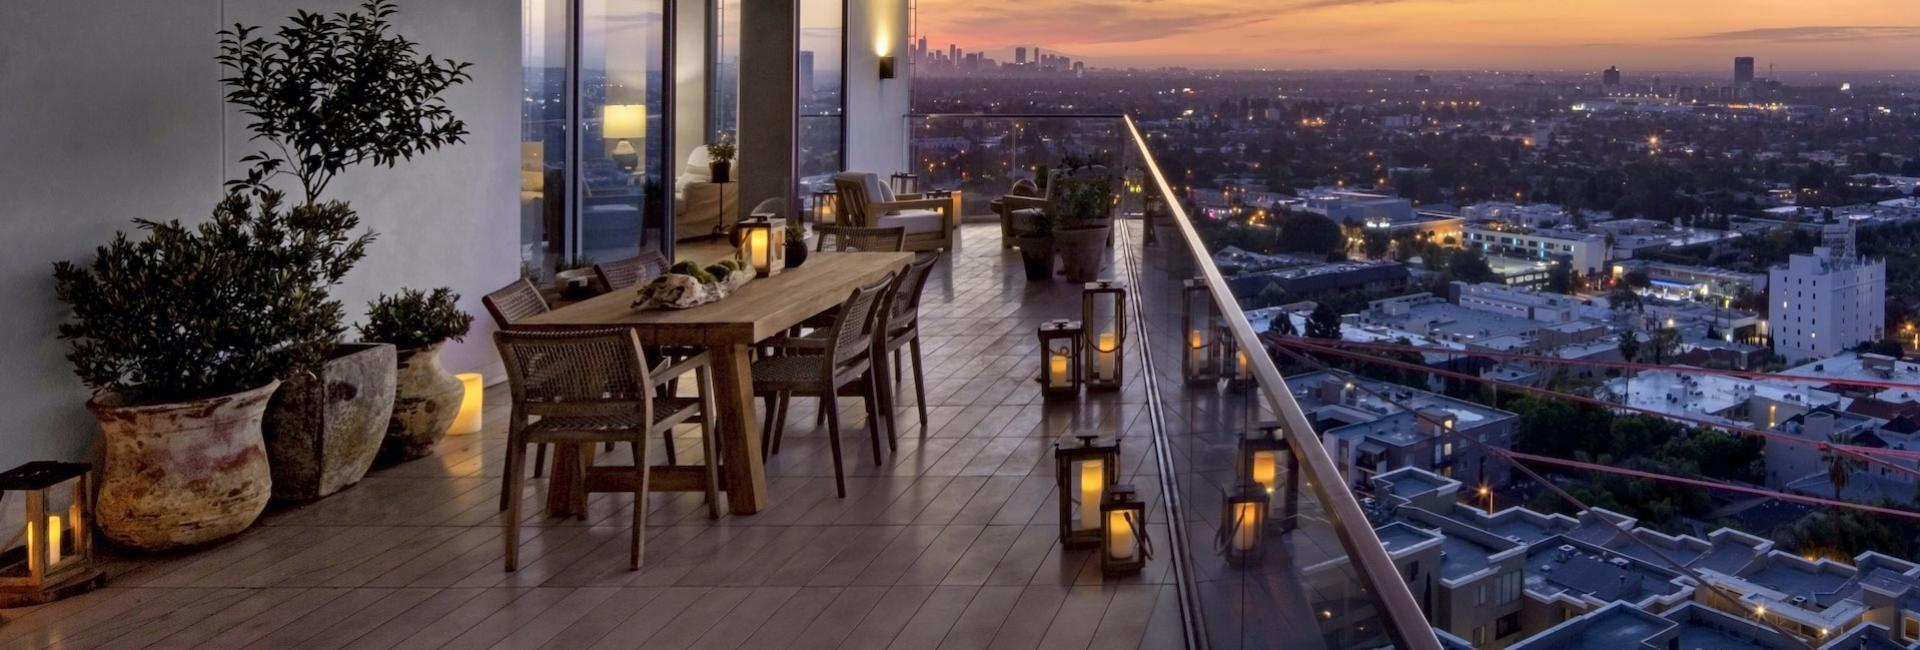 1 Hotel West Hollywood Canyon House Balcony View